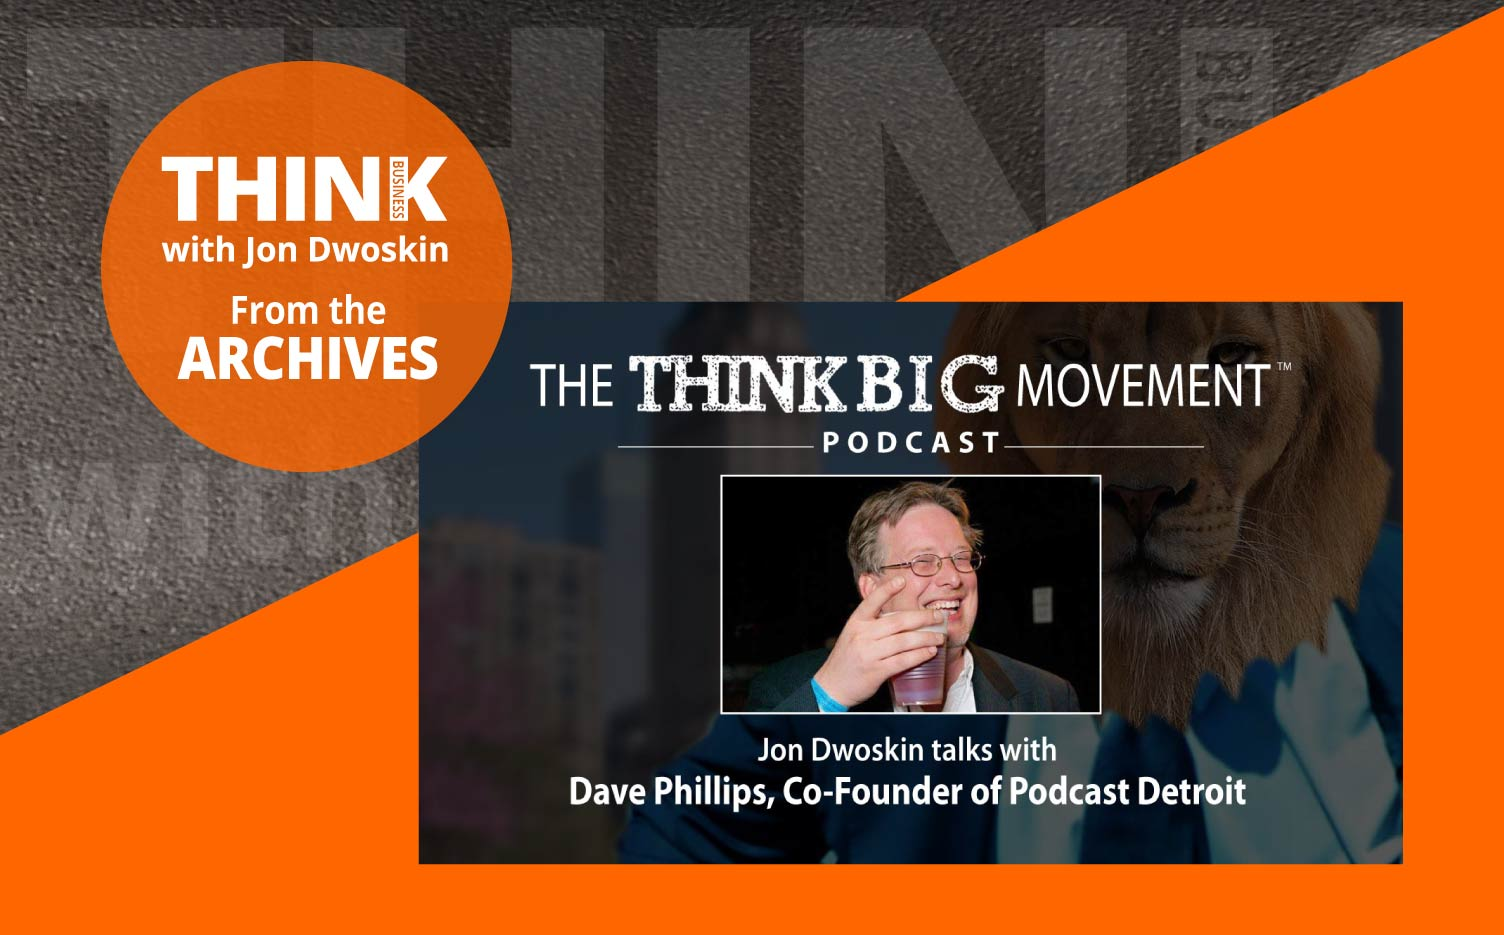 THINK Business Podcast: Jon Dwoskin Interviews Dave Phillips, Co-Founder of Podcast Detroit